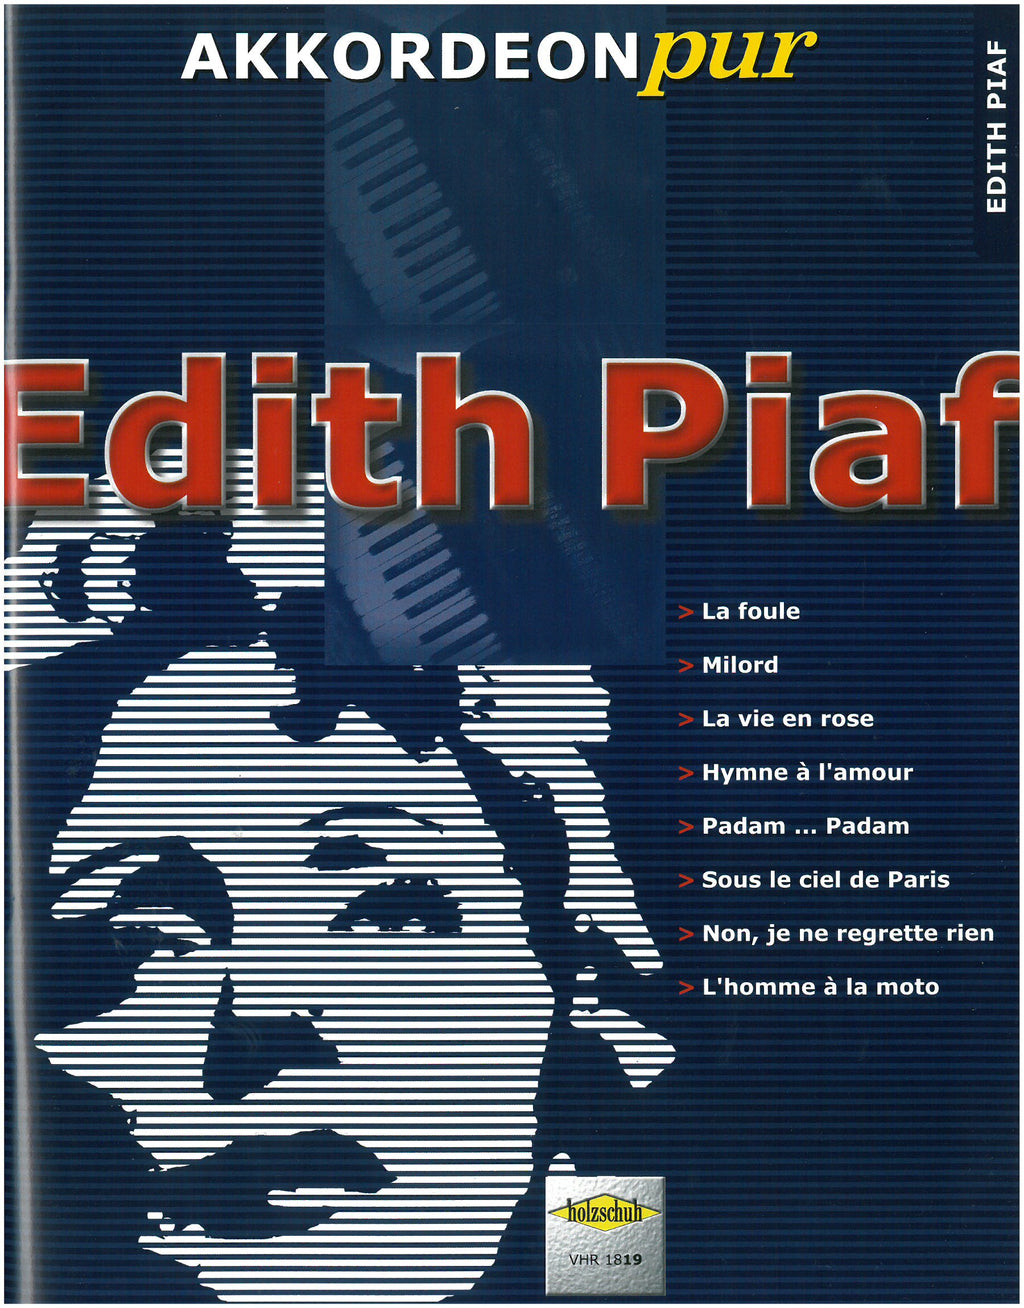 Edith Piaf Accordion Cover